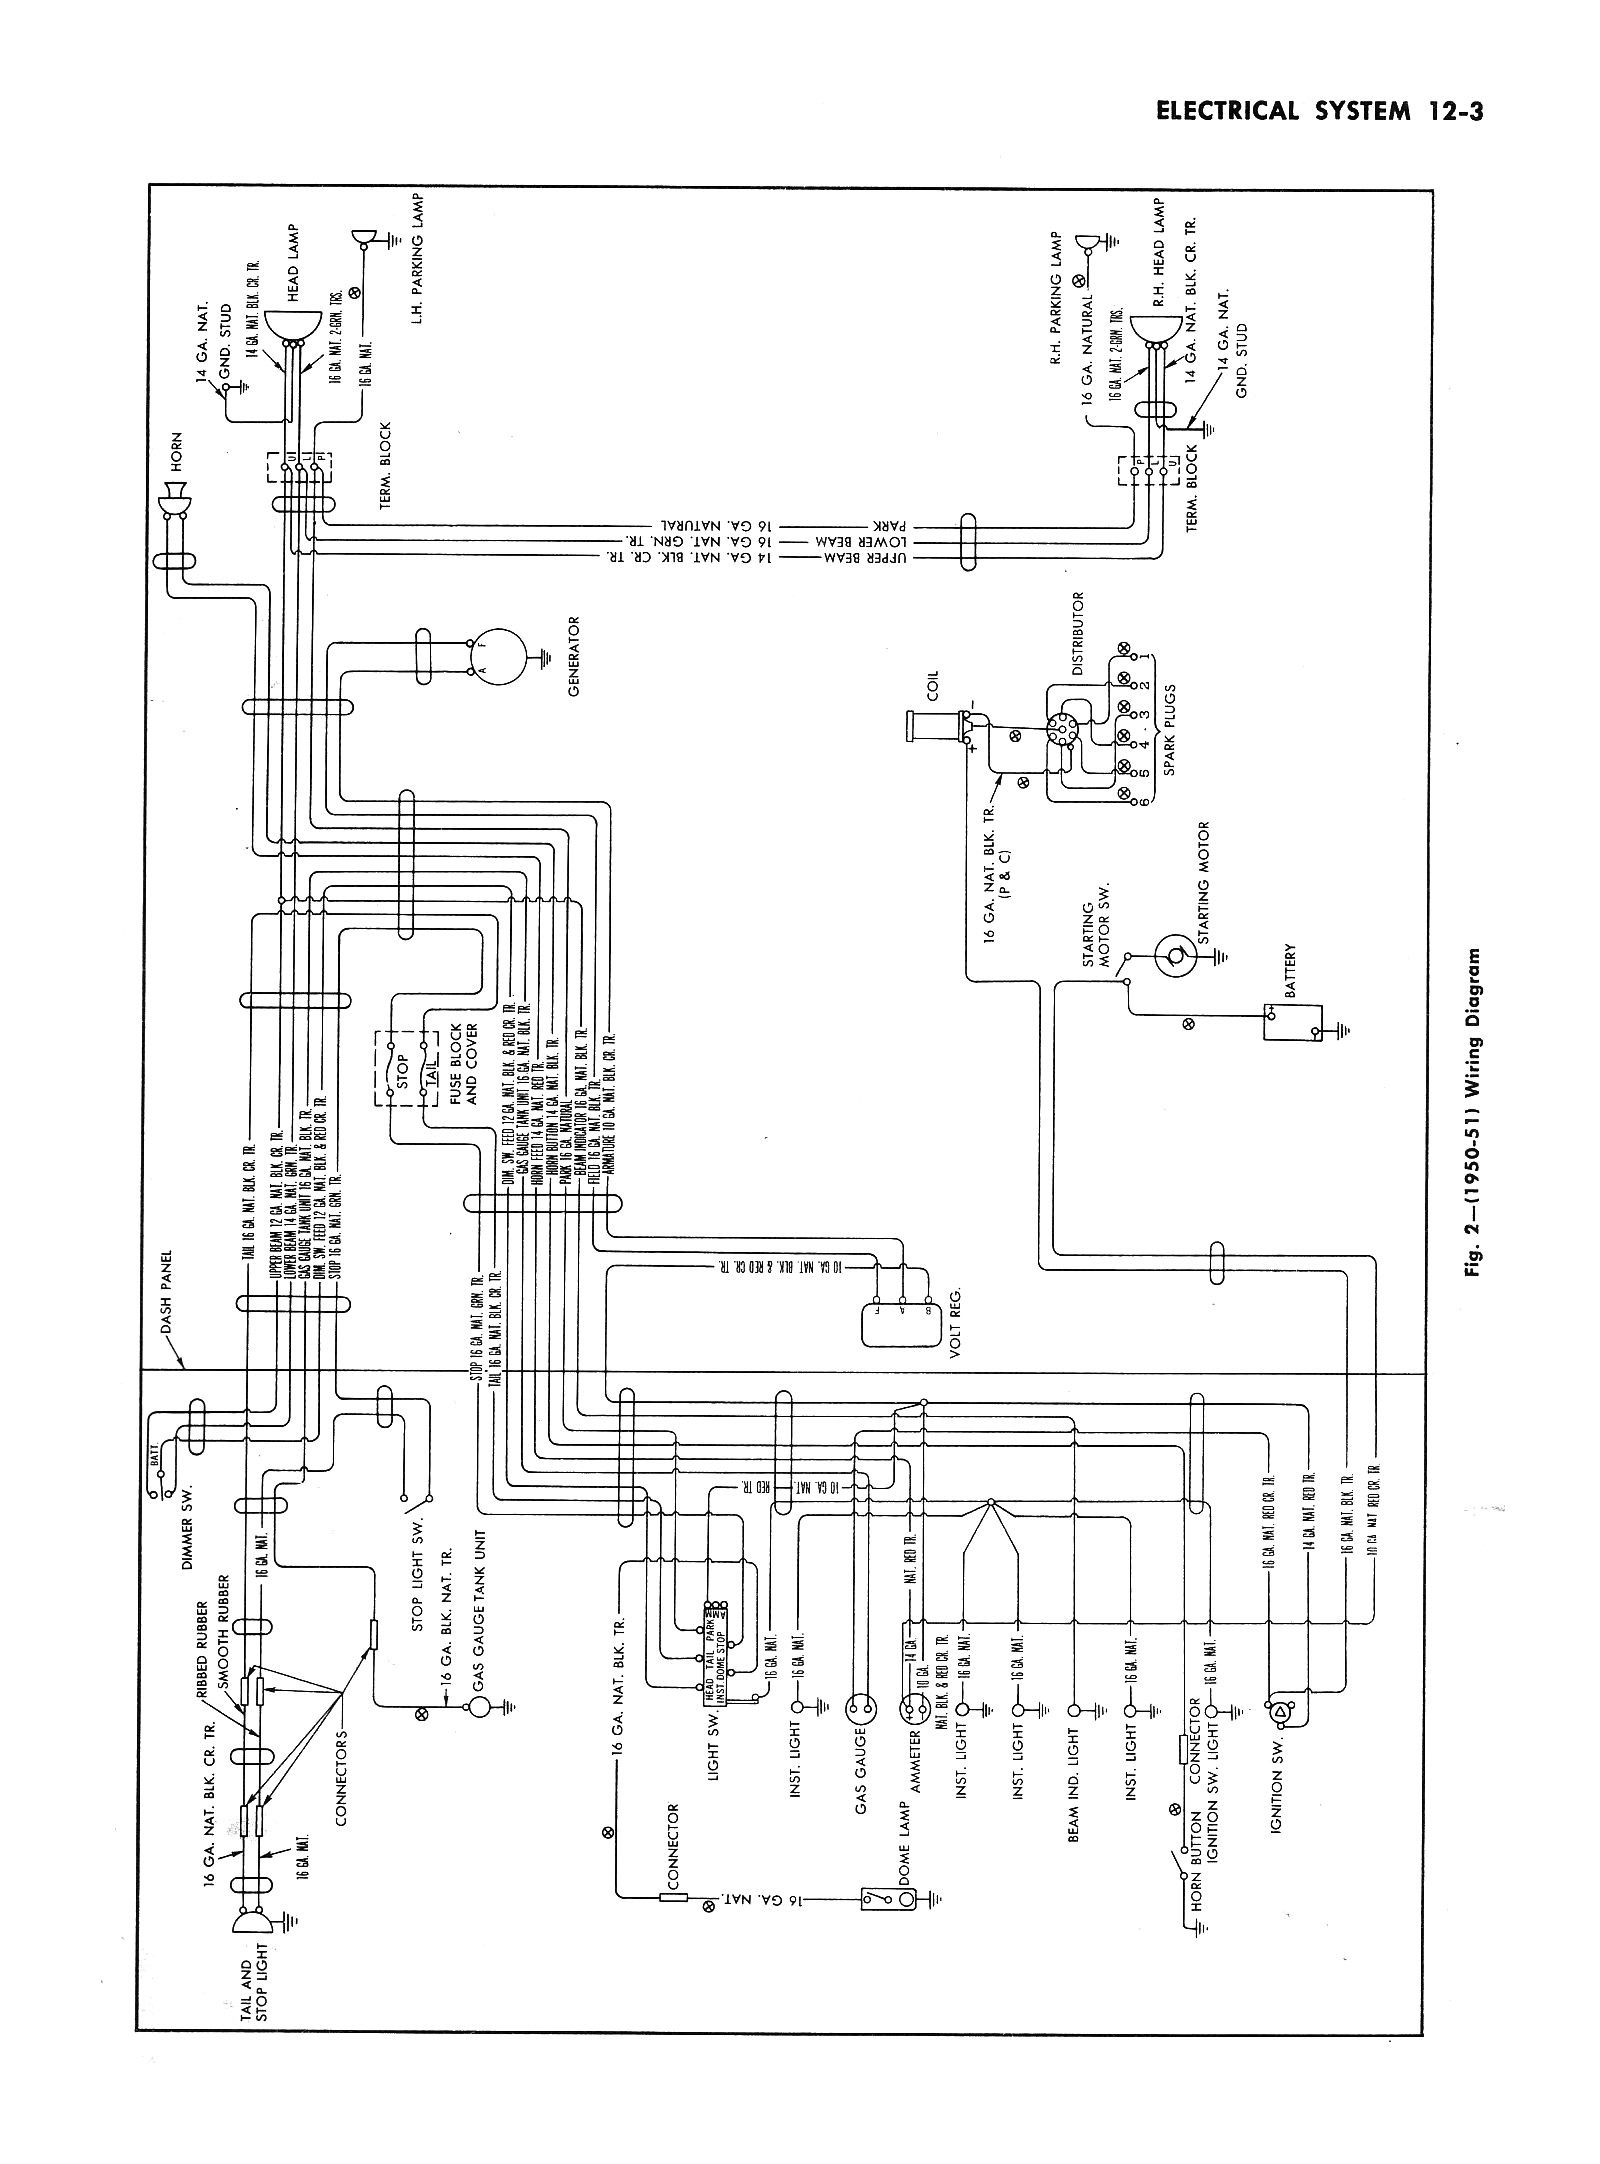 2004 Chevy Tail Light Electrical Diagram Chevy Wiring Diagrams Of 2004 Chevy Tail Light Electrical Diagram